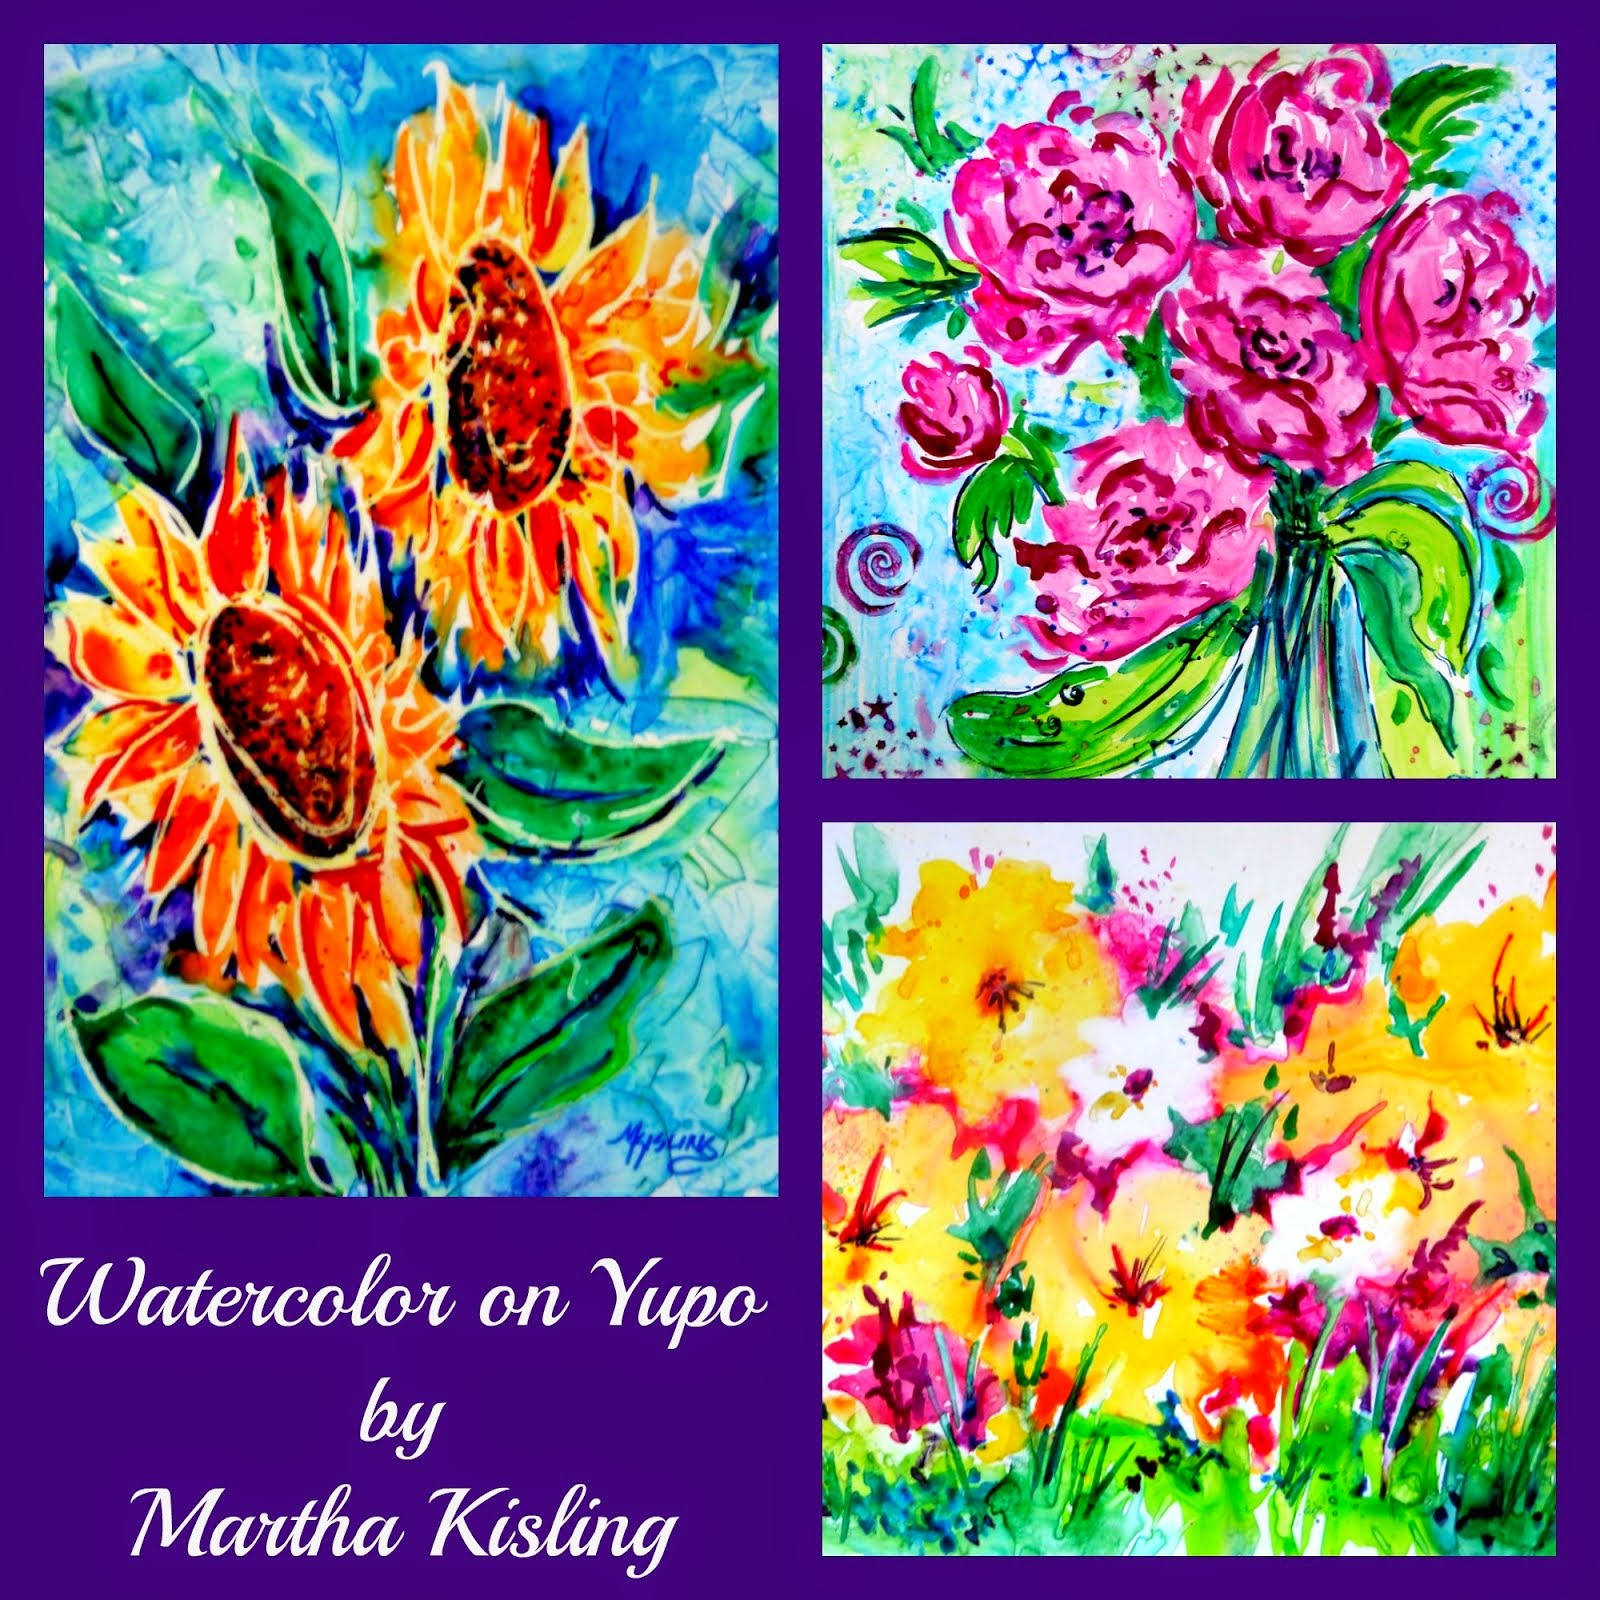 Watercolor Flowers on Yupo Workshop Aug 23, 2014 Breckenridge, CO